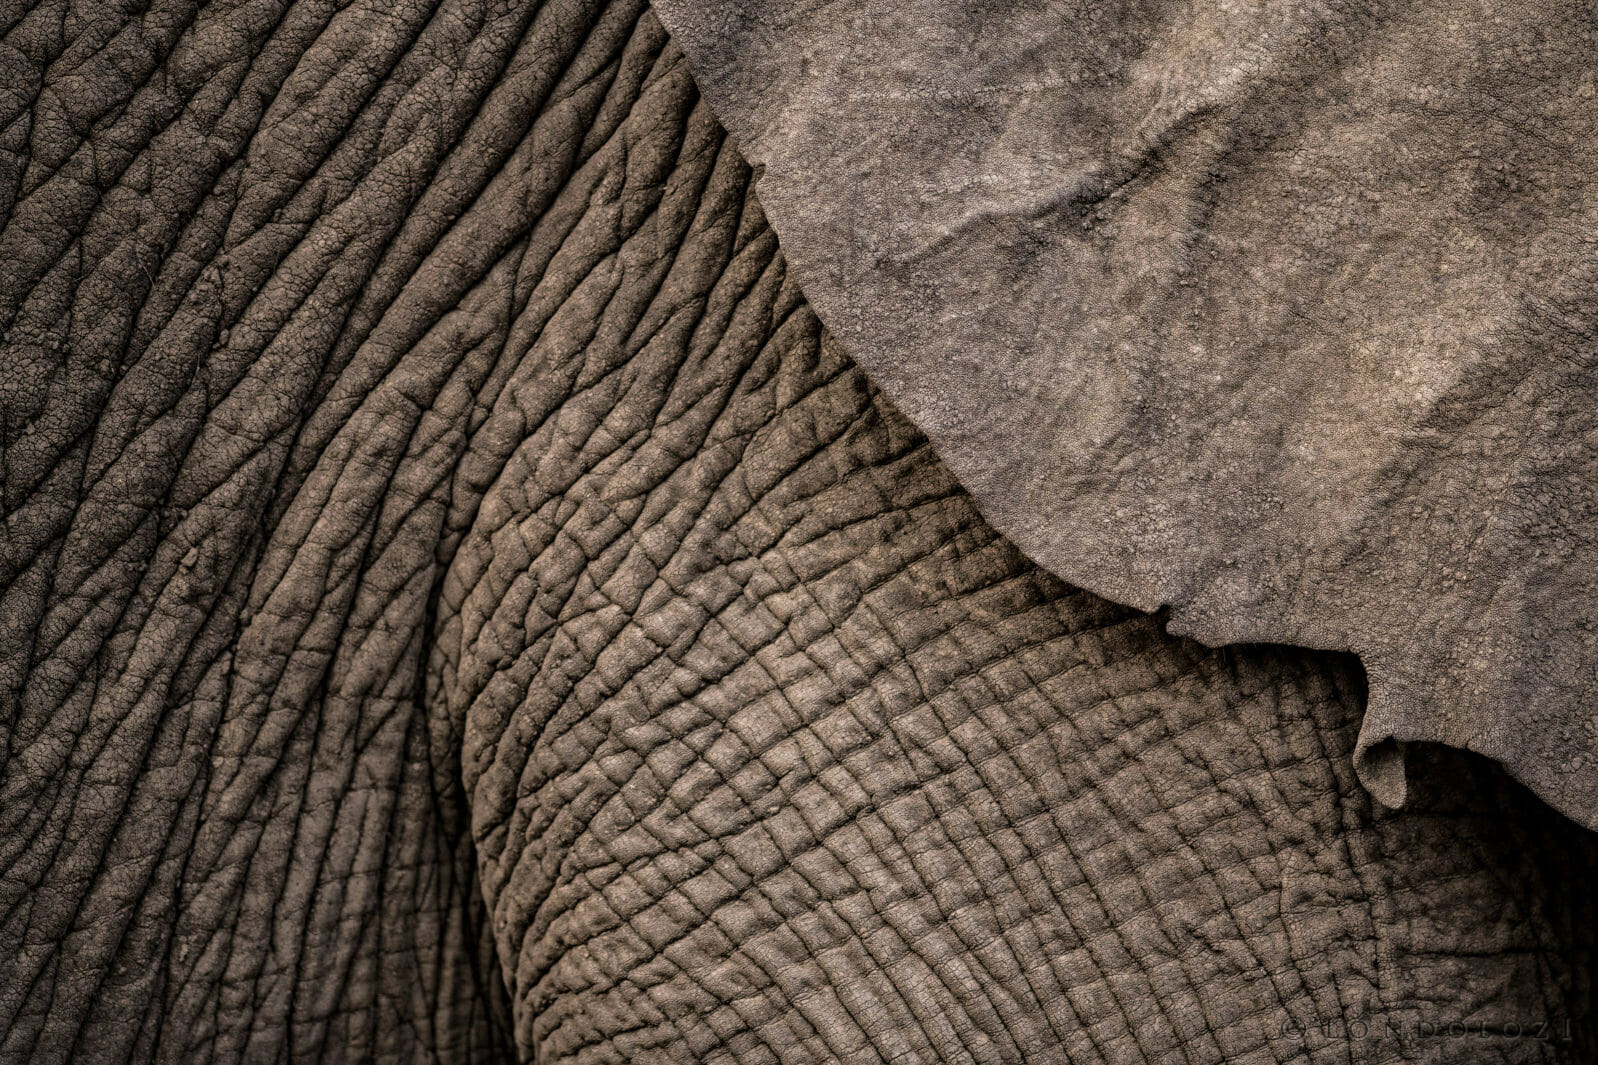 A close up of the texture of an elephant's skin at Londolozi